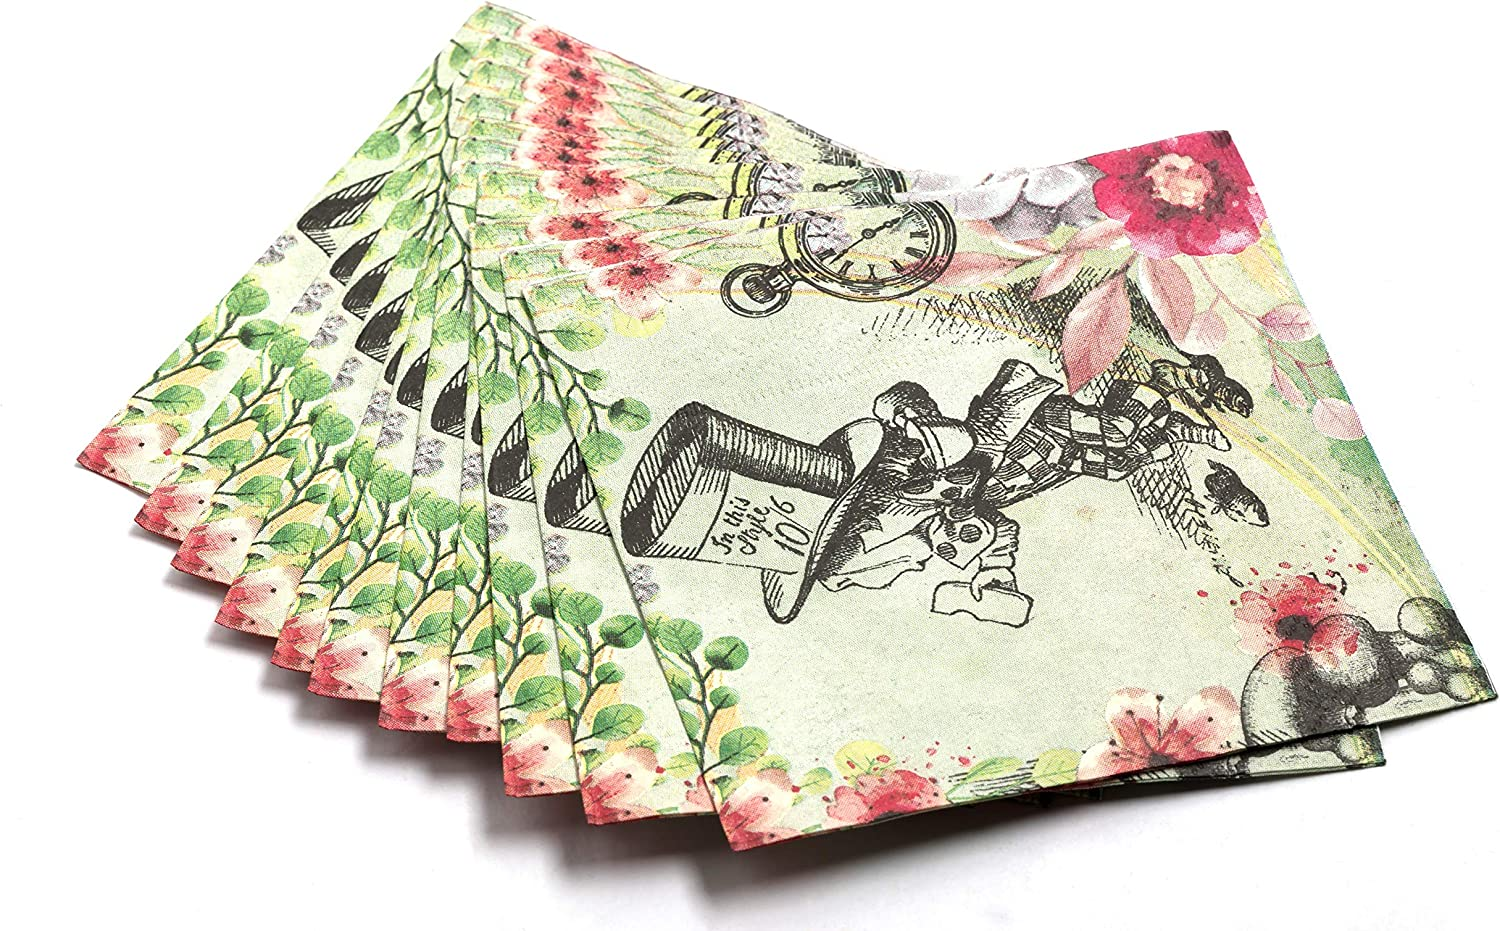 4 Vintage Table Paper Napkins for Decoupage Lunch Party Little Girl /& Umbrella